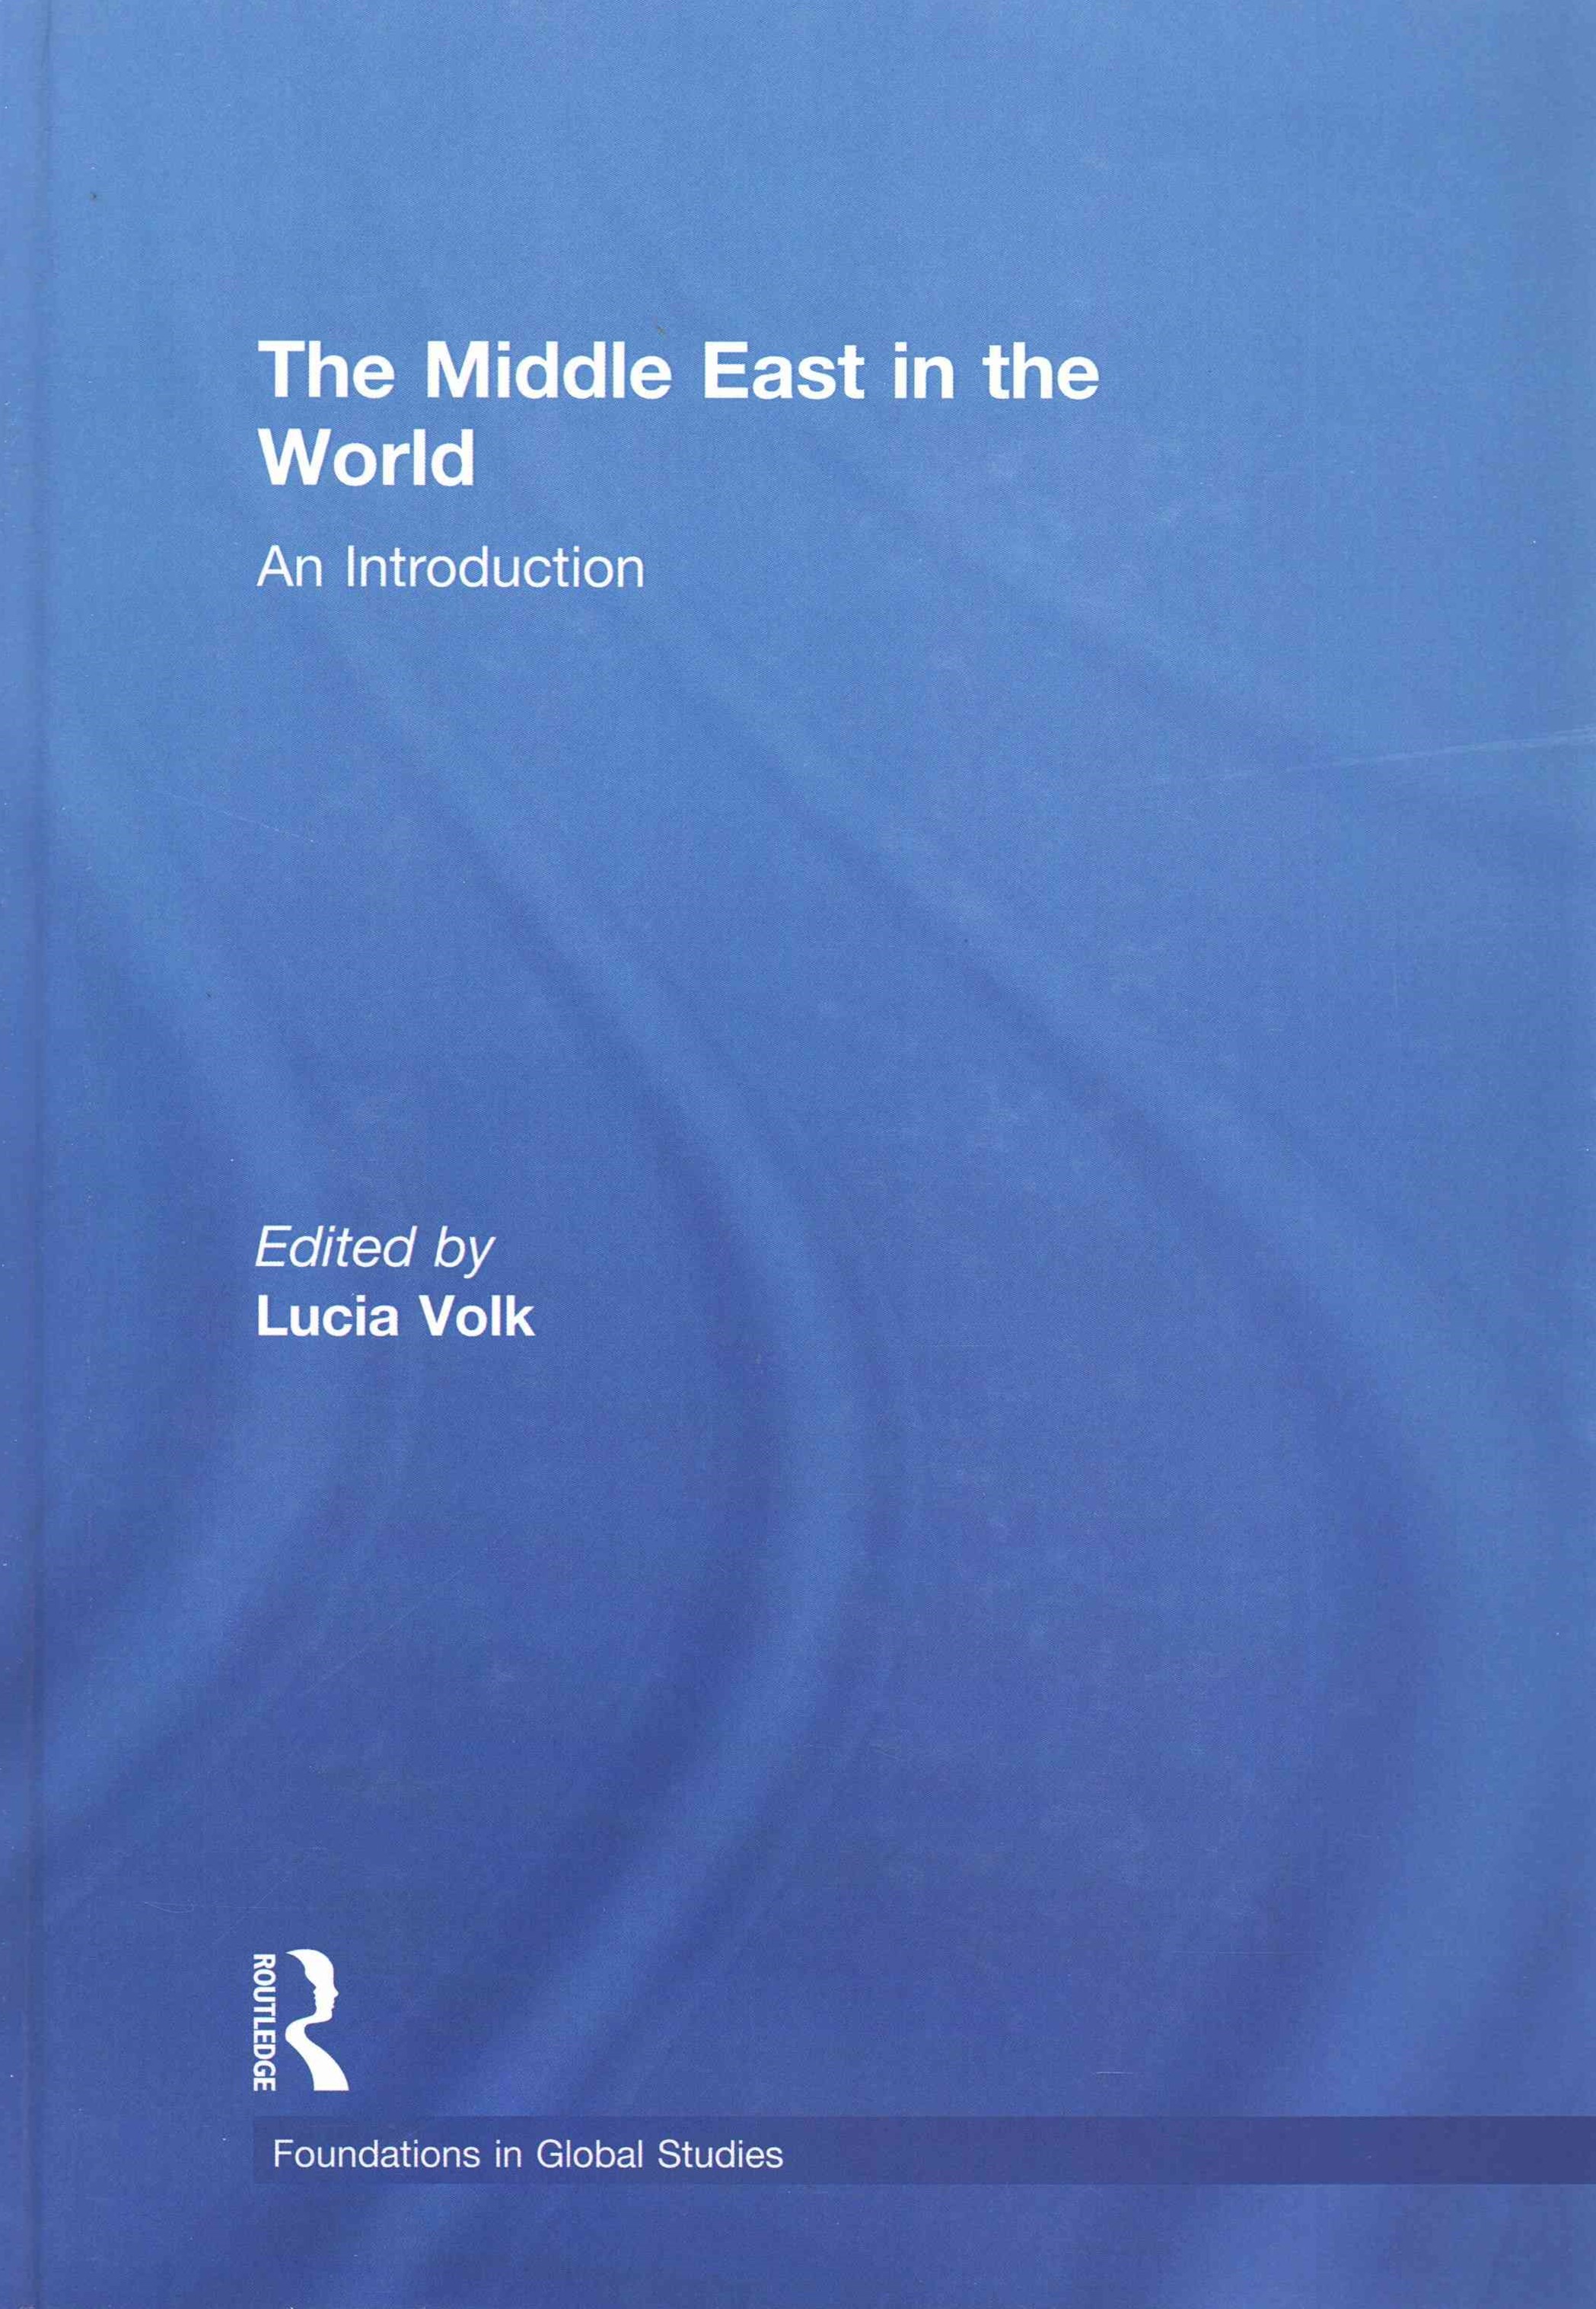 The Middle East in the World